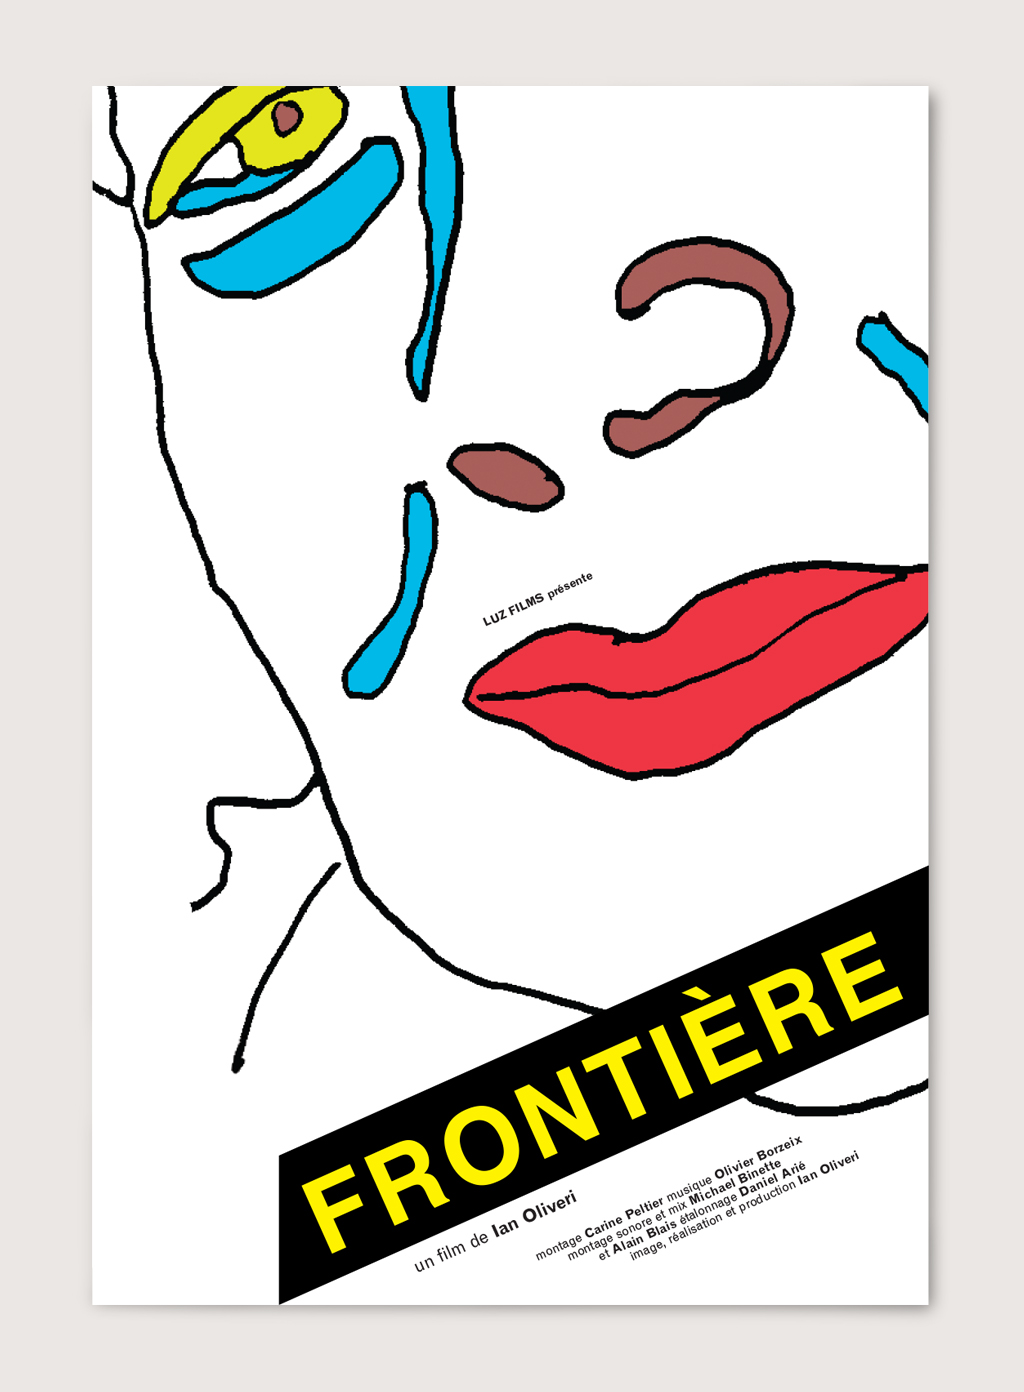 Frontiere_poster_b